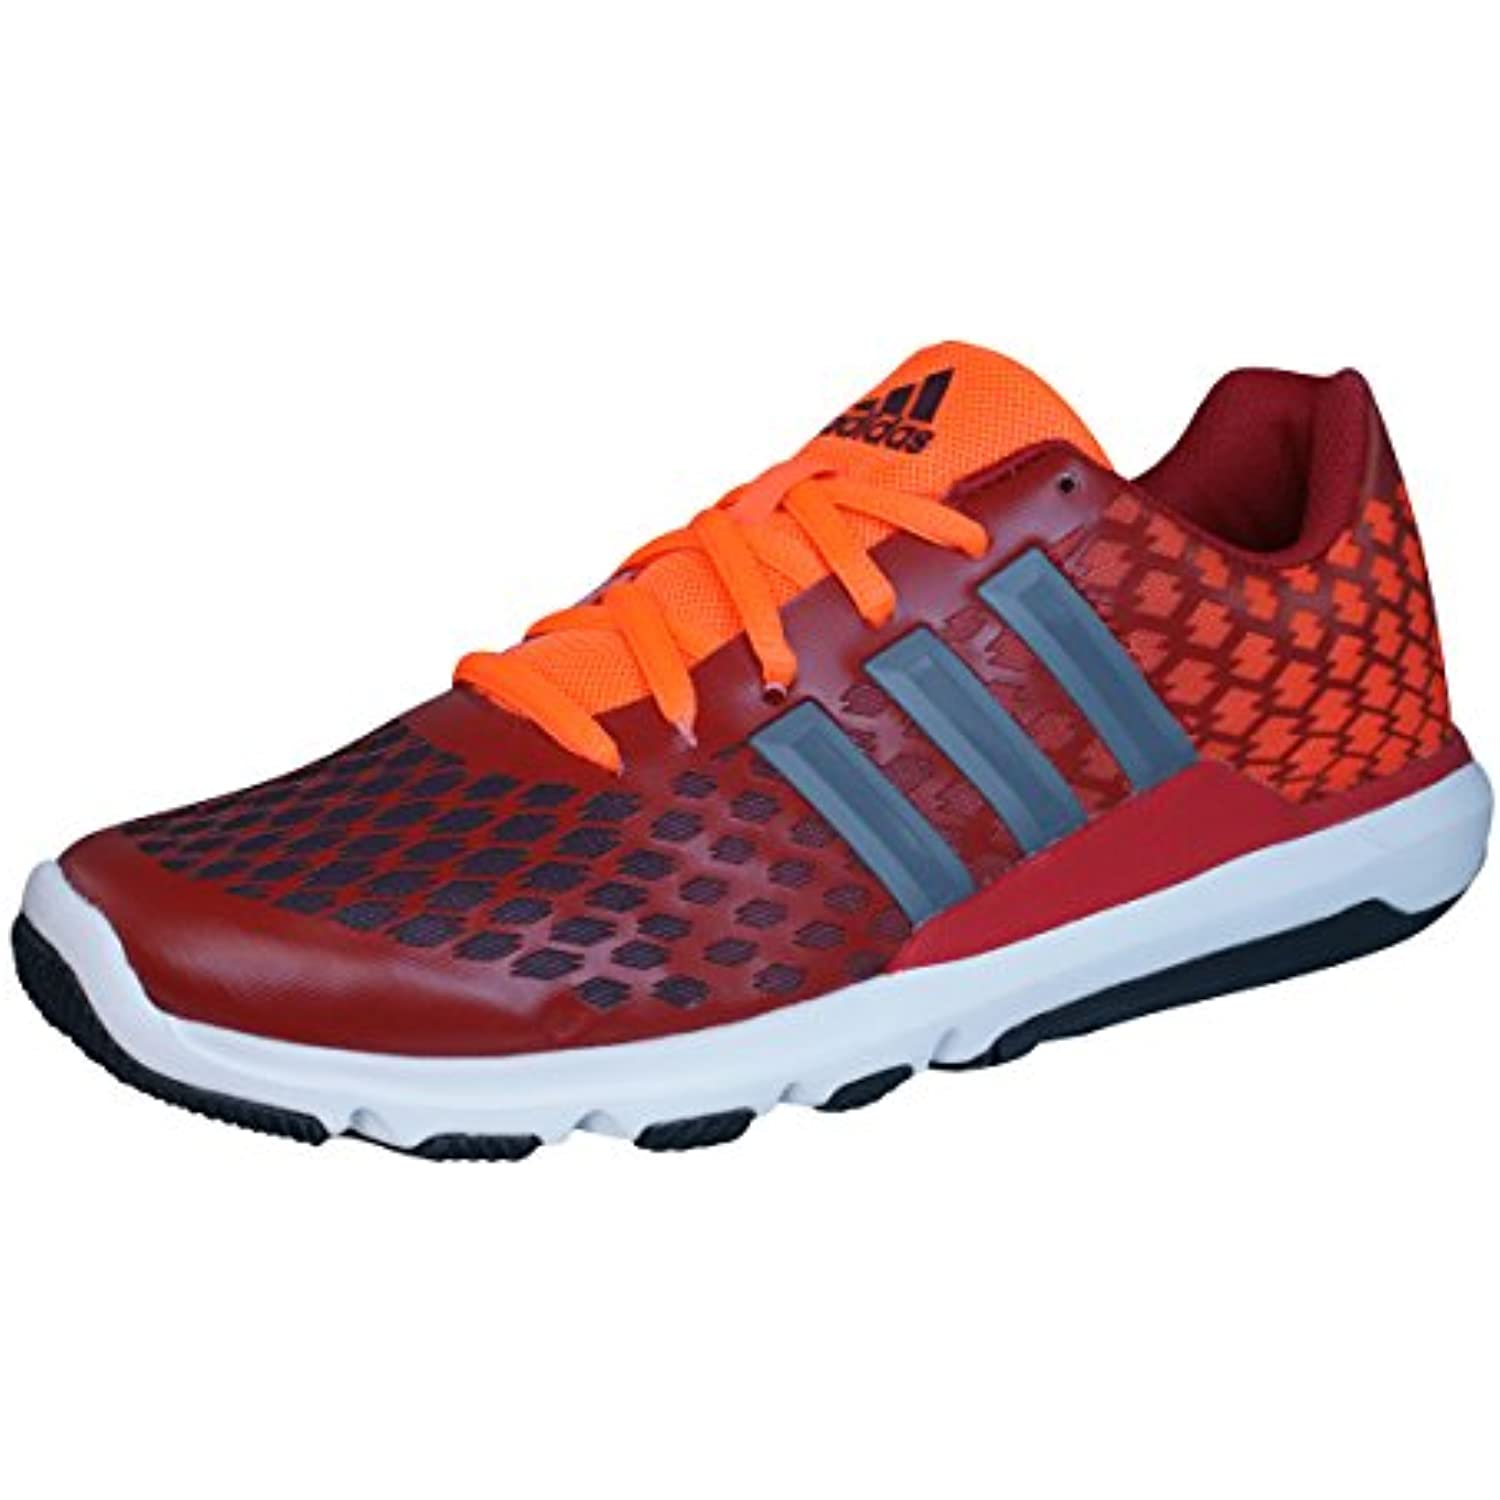 best cheap df83d 1750f adidas Adipure Primo Primo Adipure Hommes Courir Baskets Chaussures -  B06Y1VJVWZ - 359cef